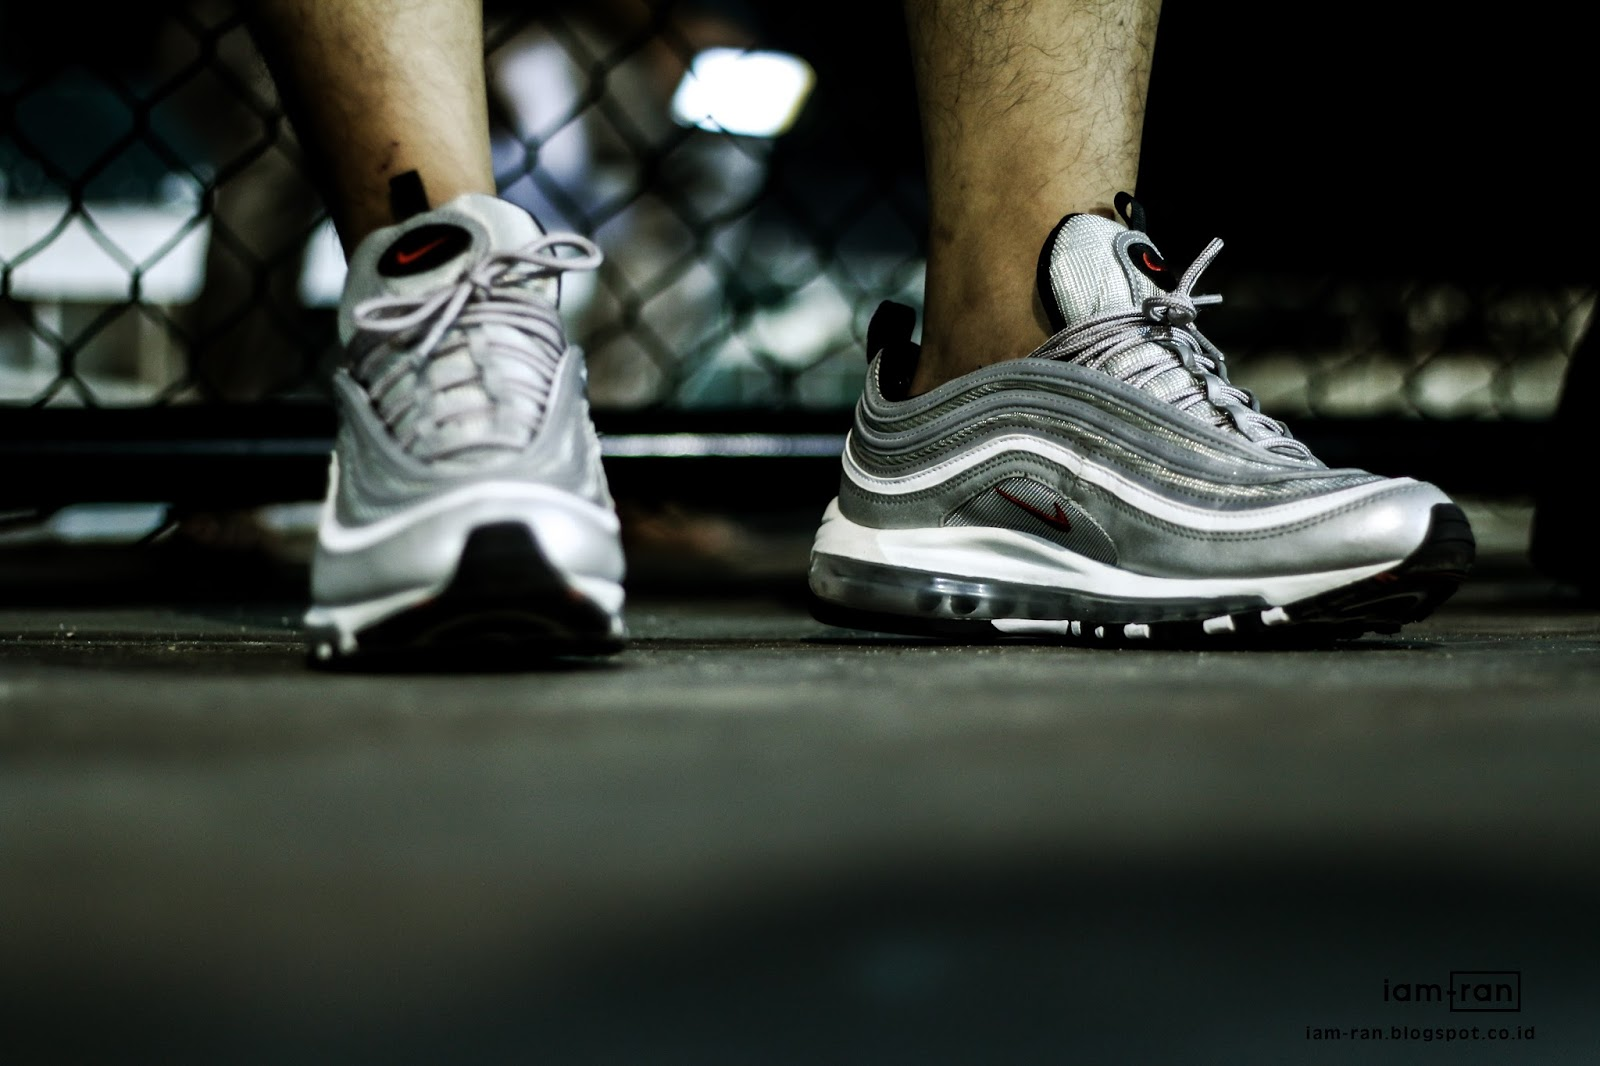 iam ran on feet leo nike air max 97 silver bullet. Black Bedroom Furniture Sets. Home Design Ideas